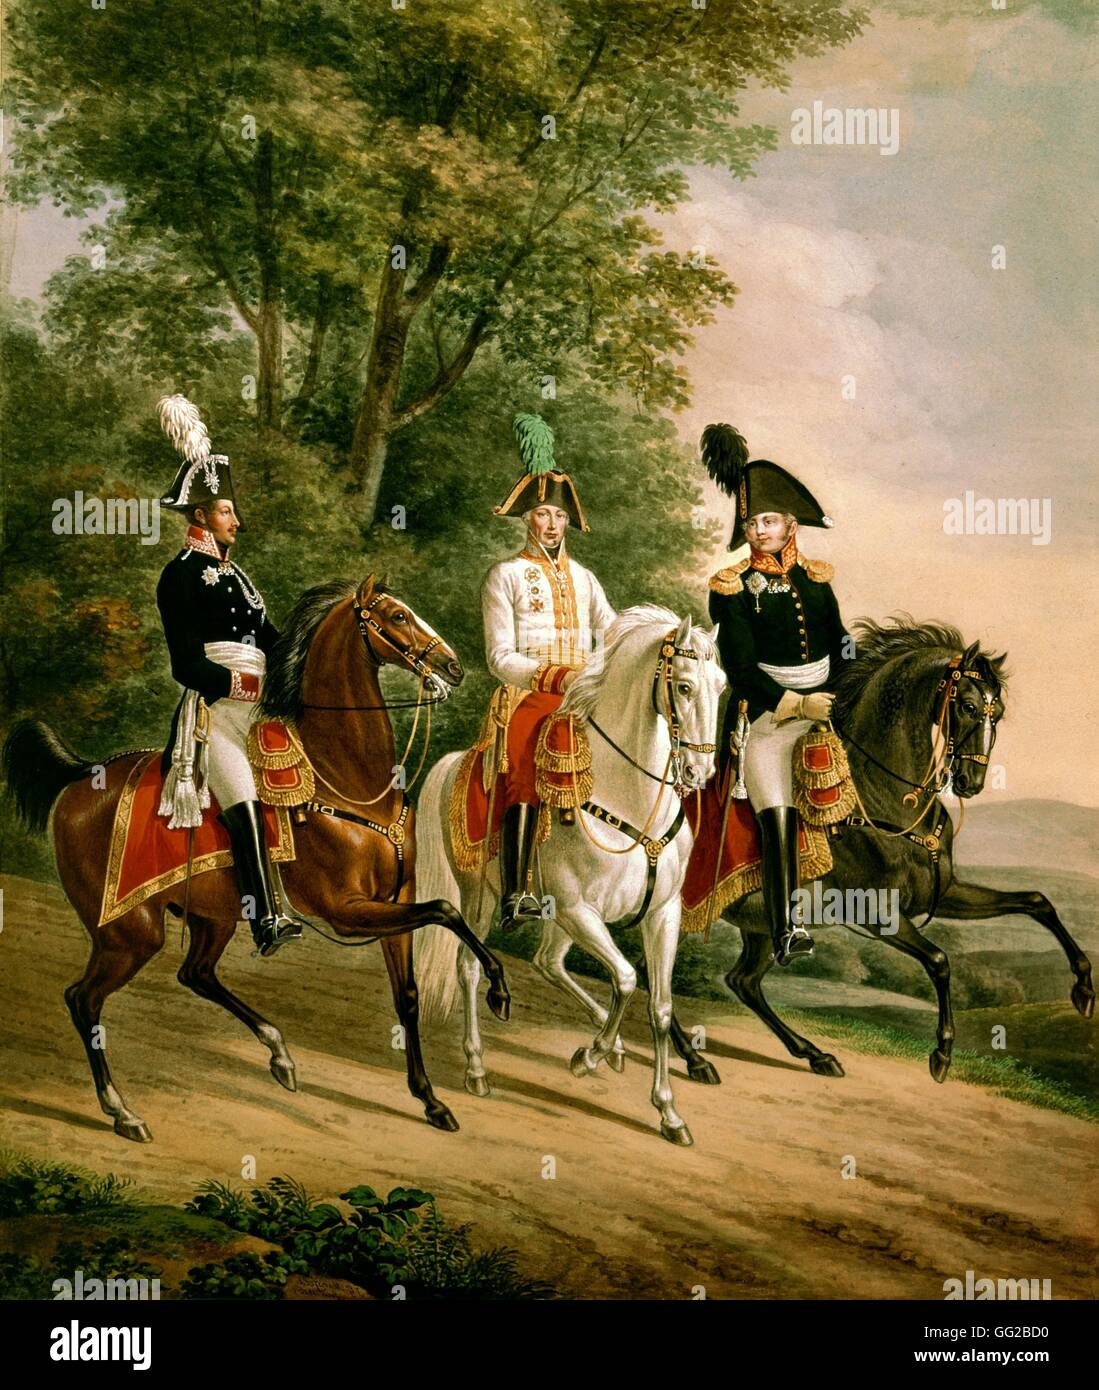 J.B. Mansfield and Klein The three monarchs: Alexander I, Francis II and F. Wilhelm III 1816 Vienna, Albertina museum - Stock Image